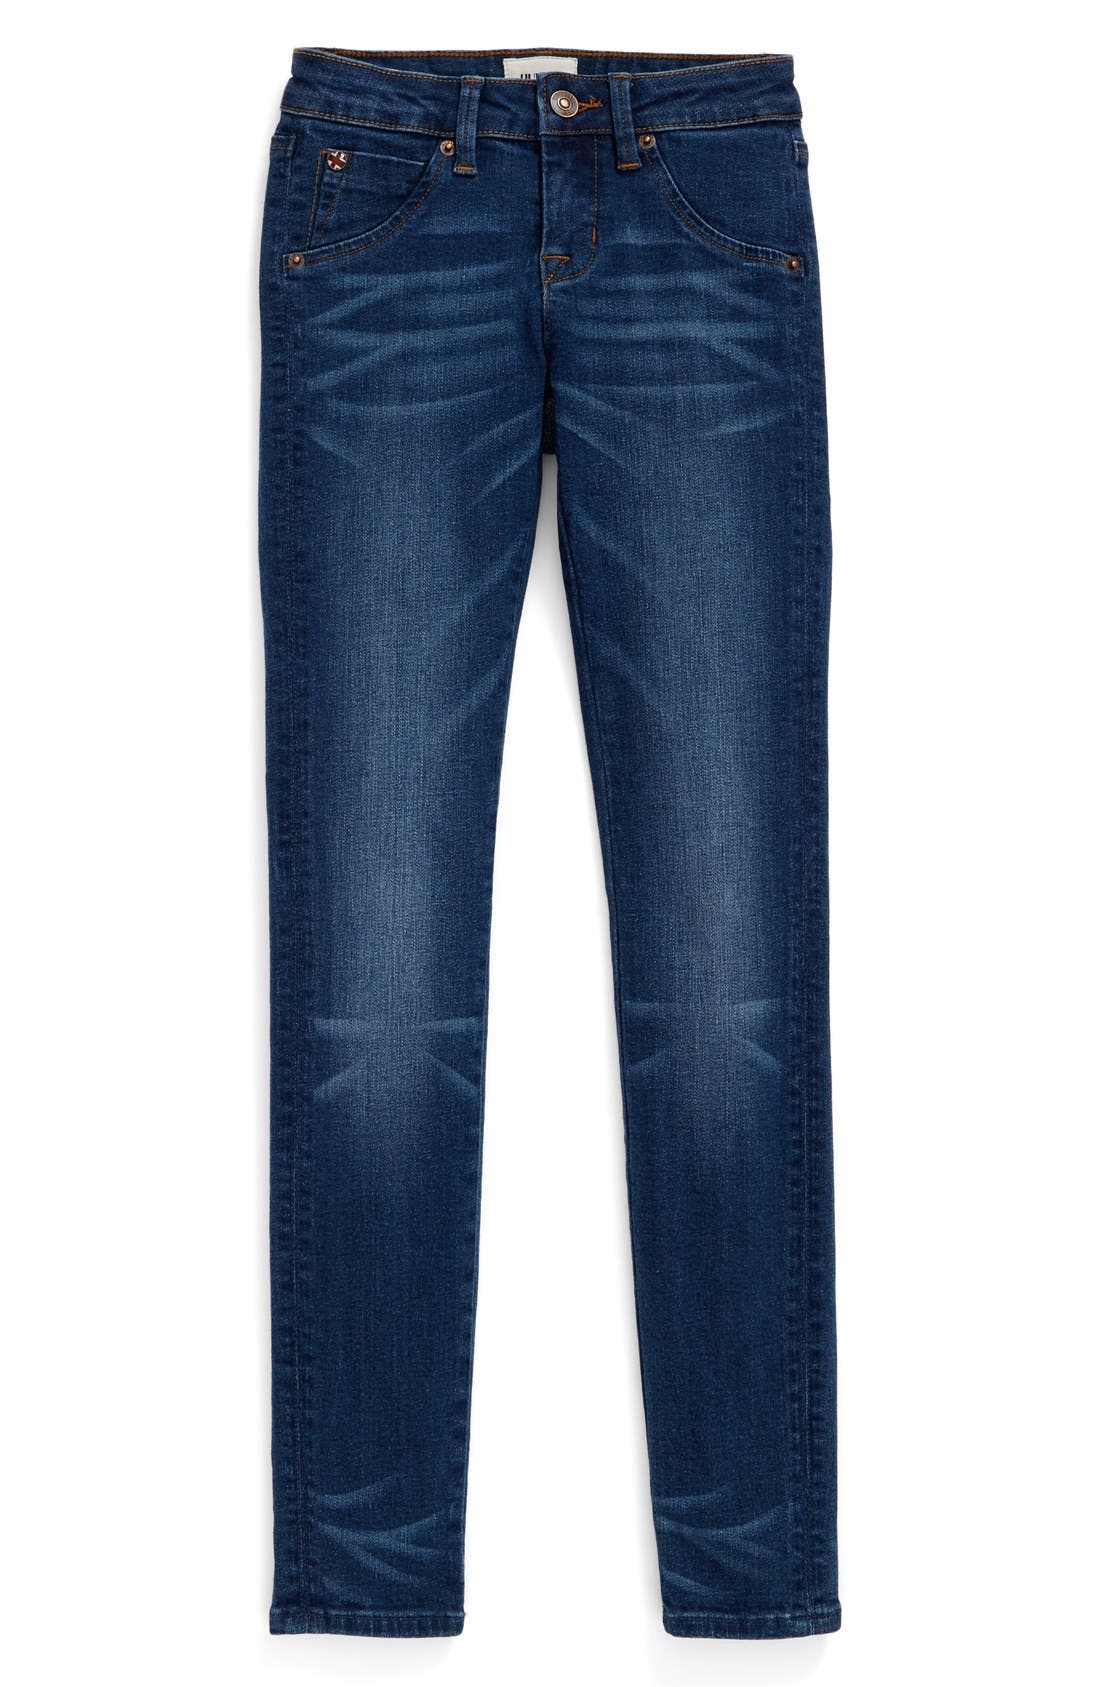 'Collin' Skinny Jeans,                             Main thumbnail 1, color,                             Dark Indigo Sand